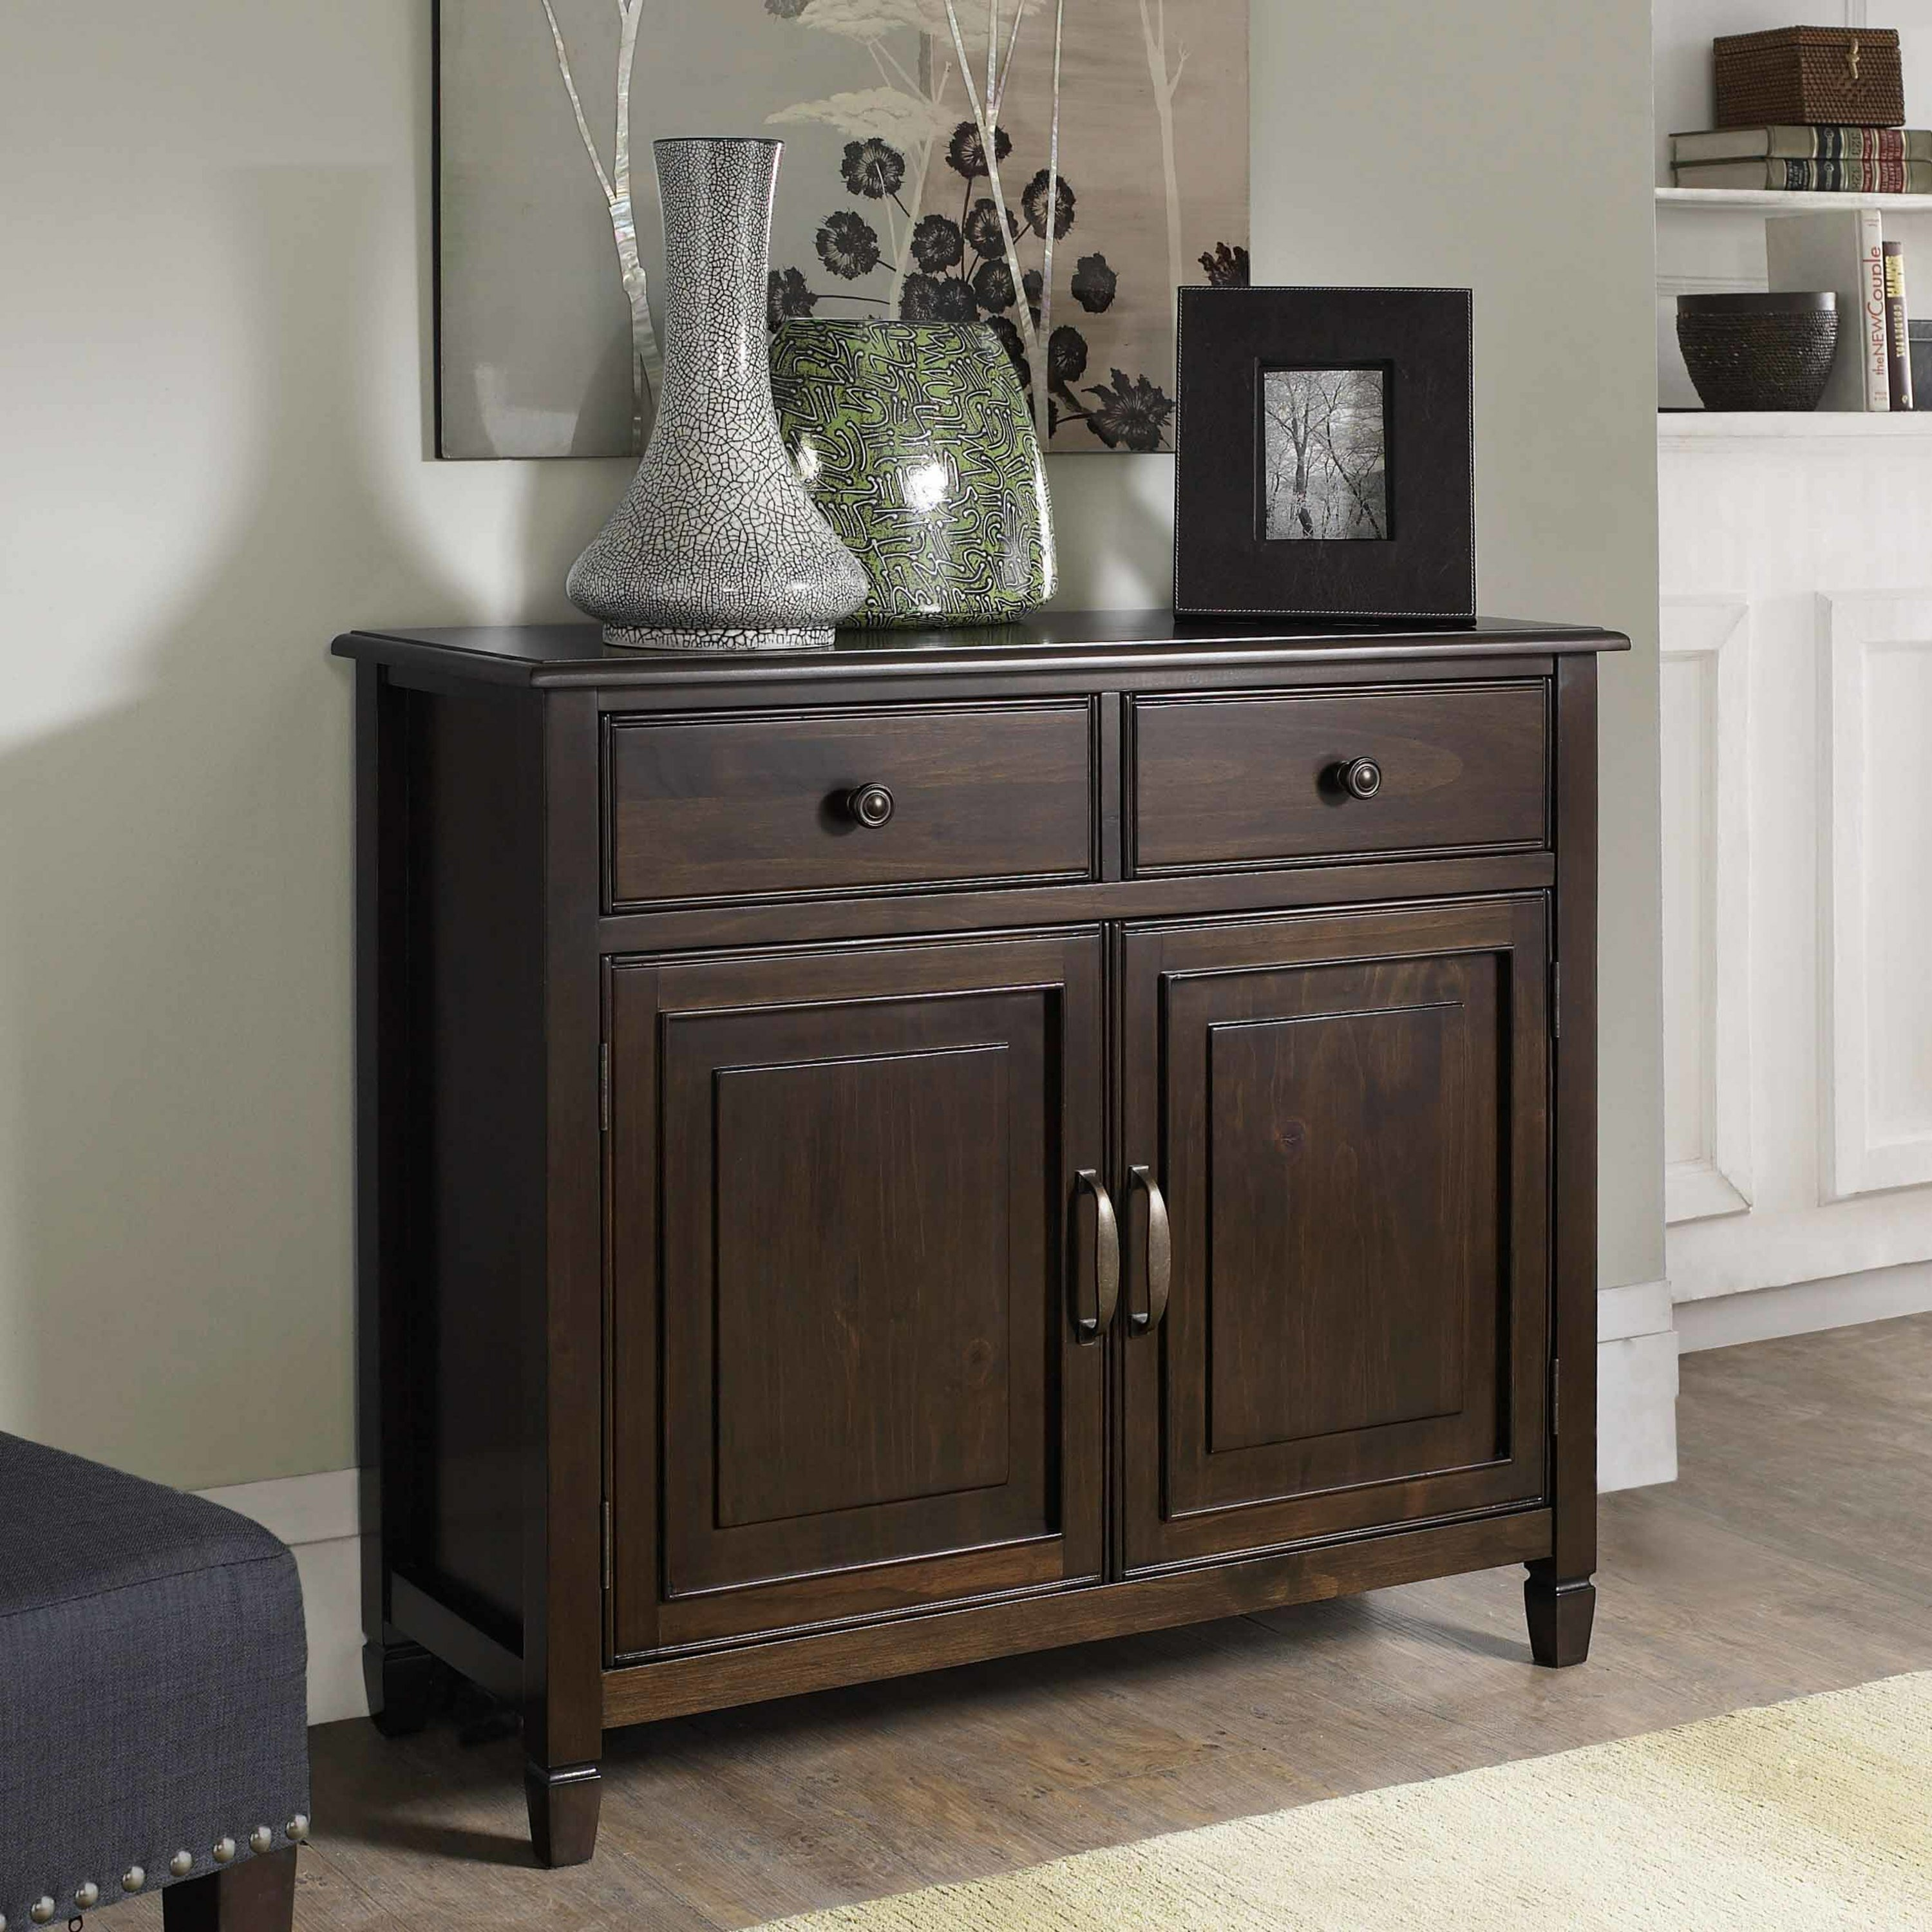 Foyer Shoe Storage Furniture : Simpli home connaught drawers and door entryway